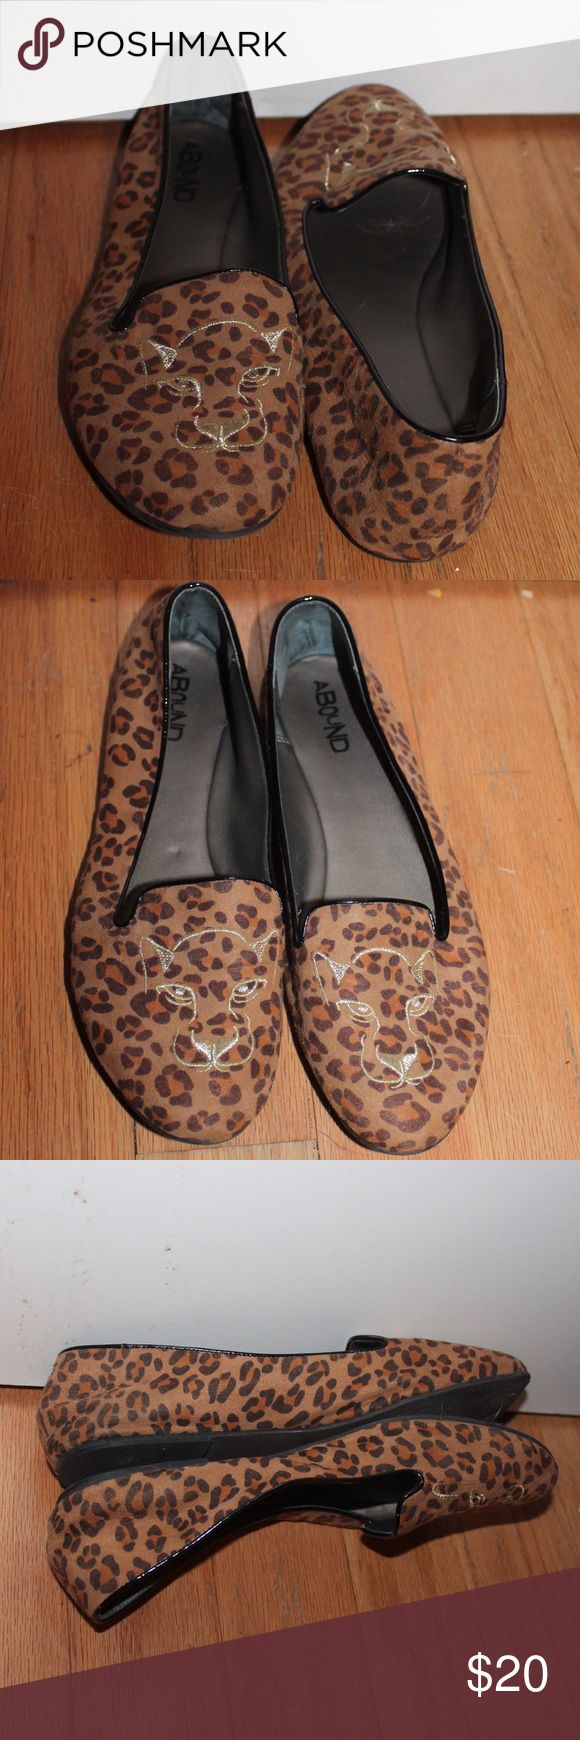 animal print espadrilles loafers cat face toes 🐯 animal print espadrilles with stitched cat face 🐯 size 9M fabric upper synthetic sole made in china by ABOUND LF Shoes